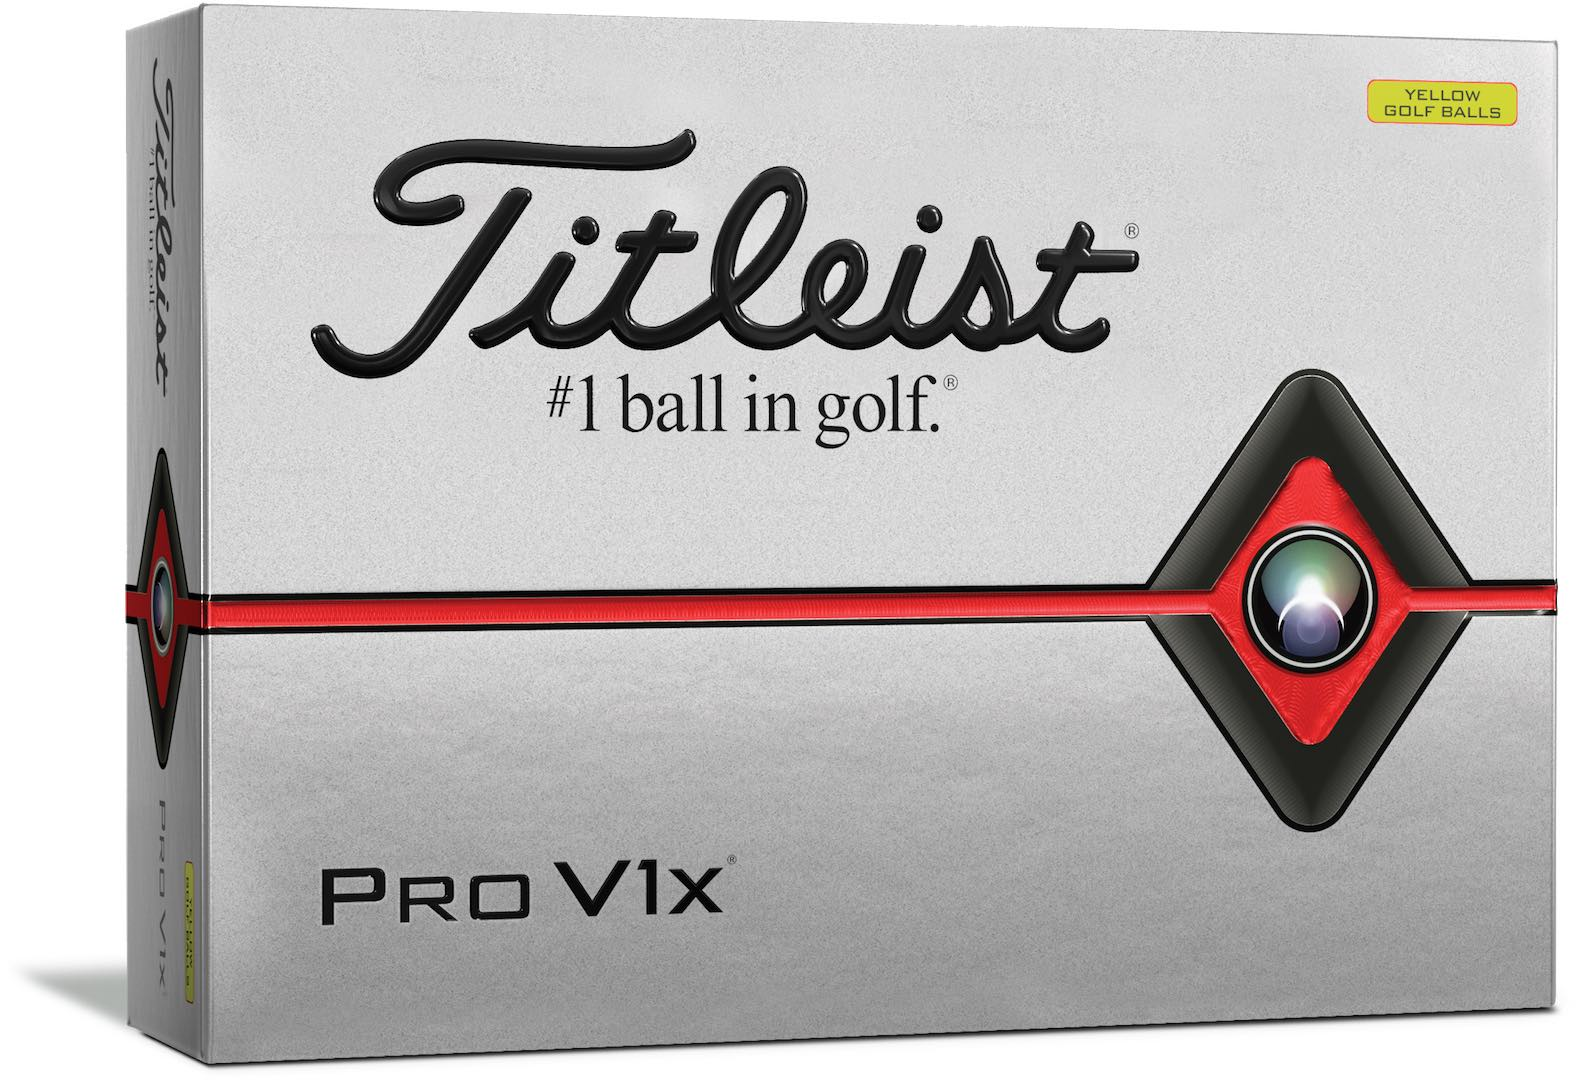 New Pro V1 and Pro V1x Golf Balls launched